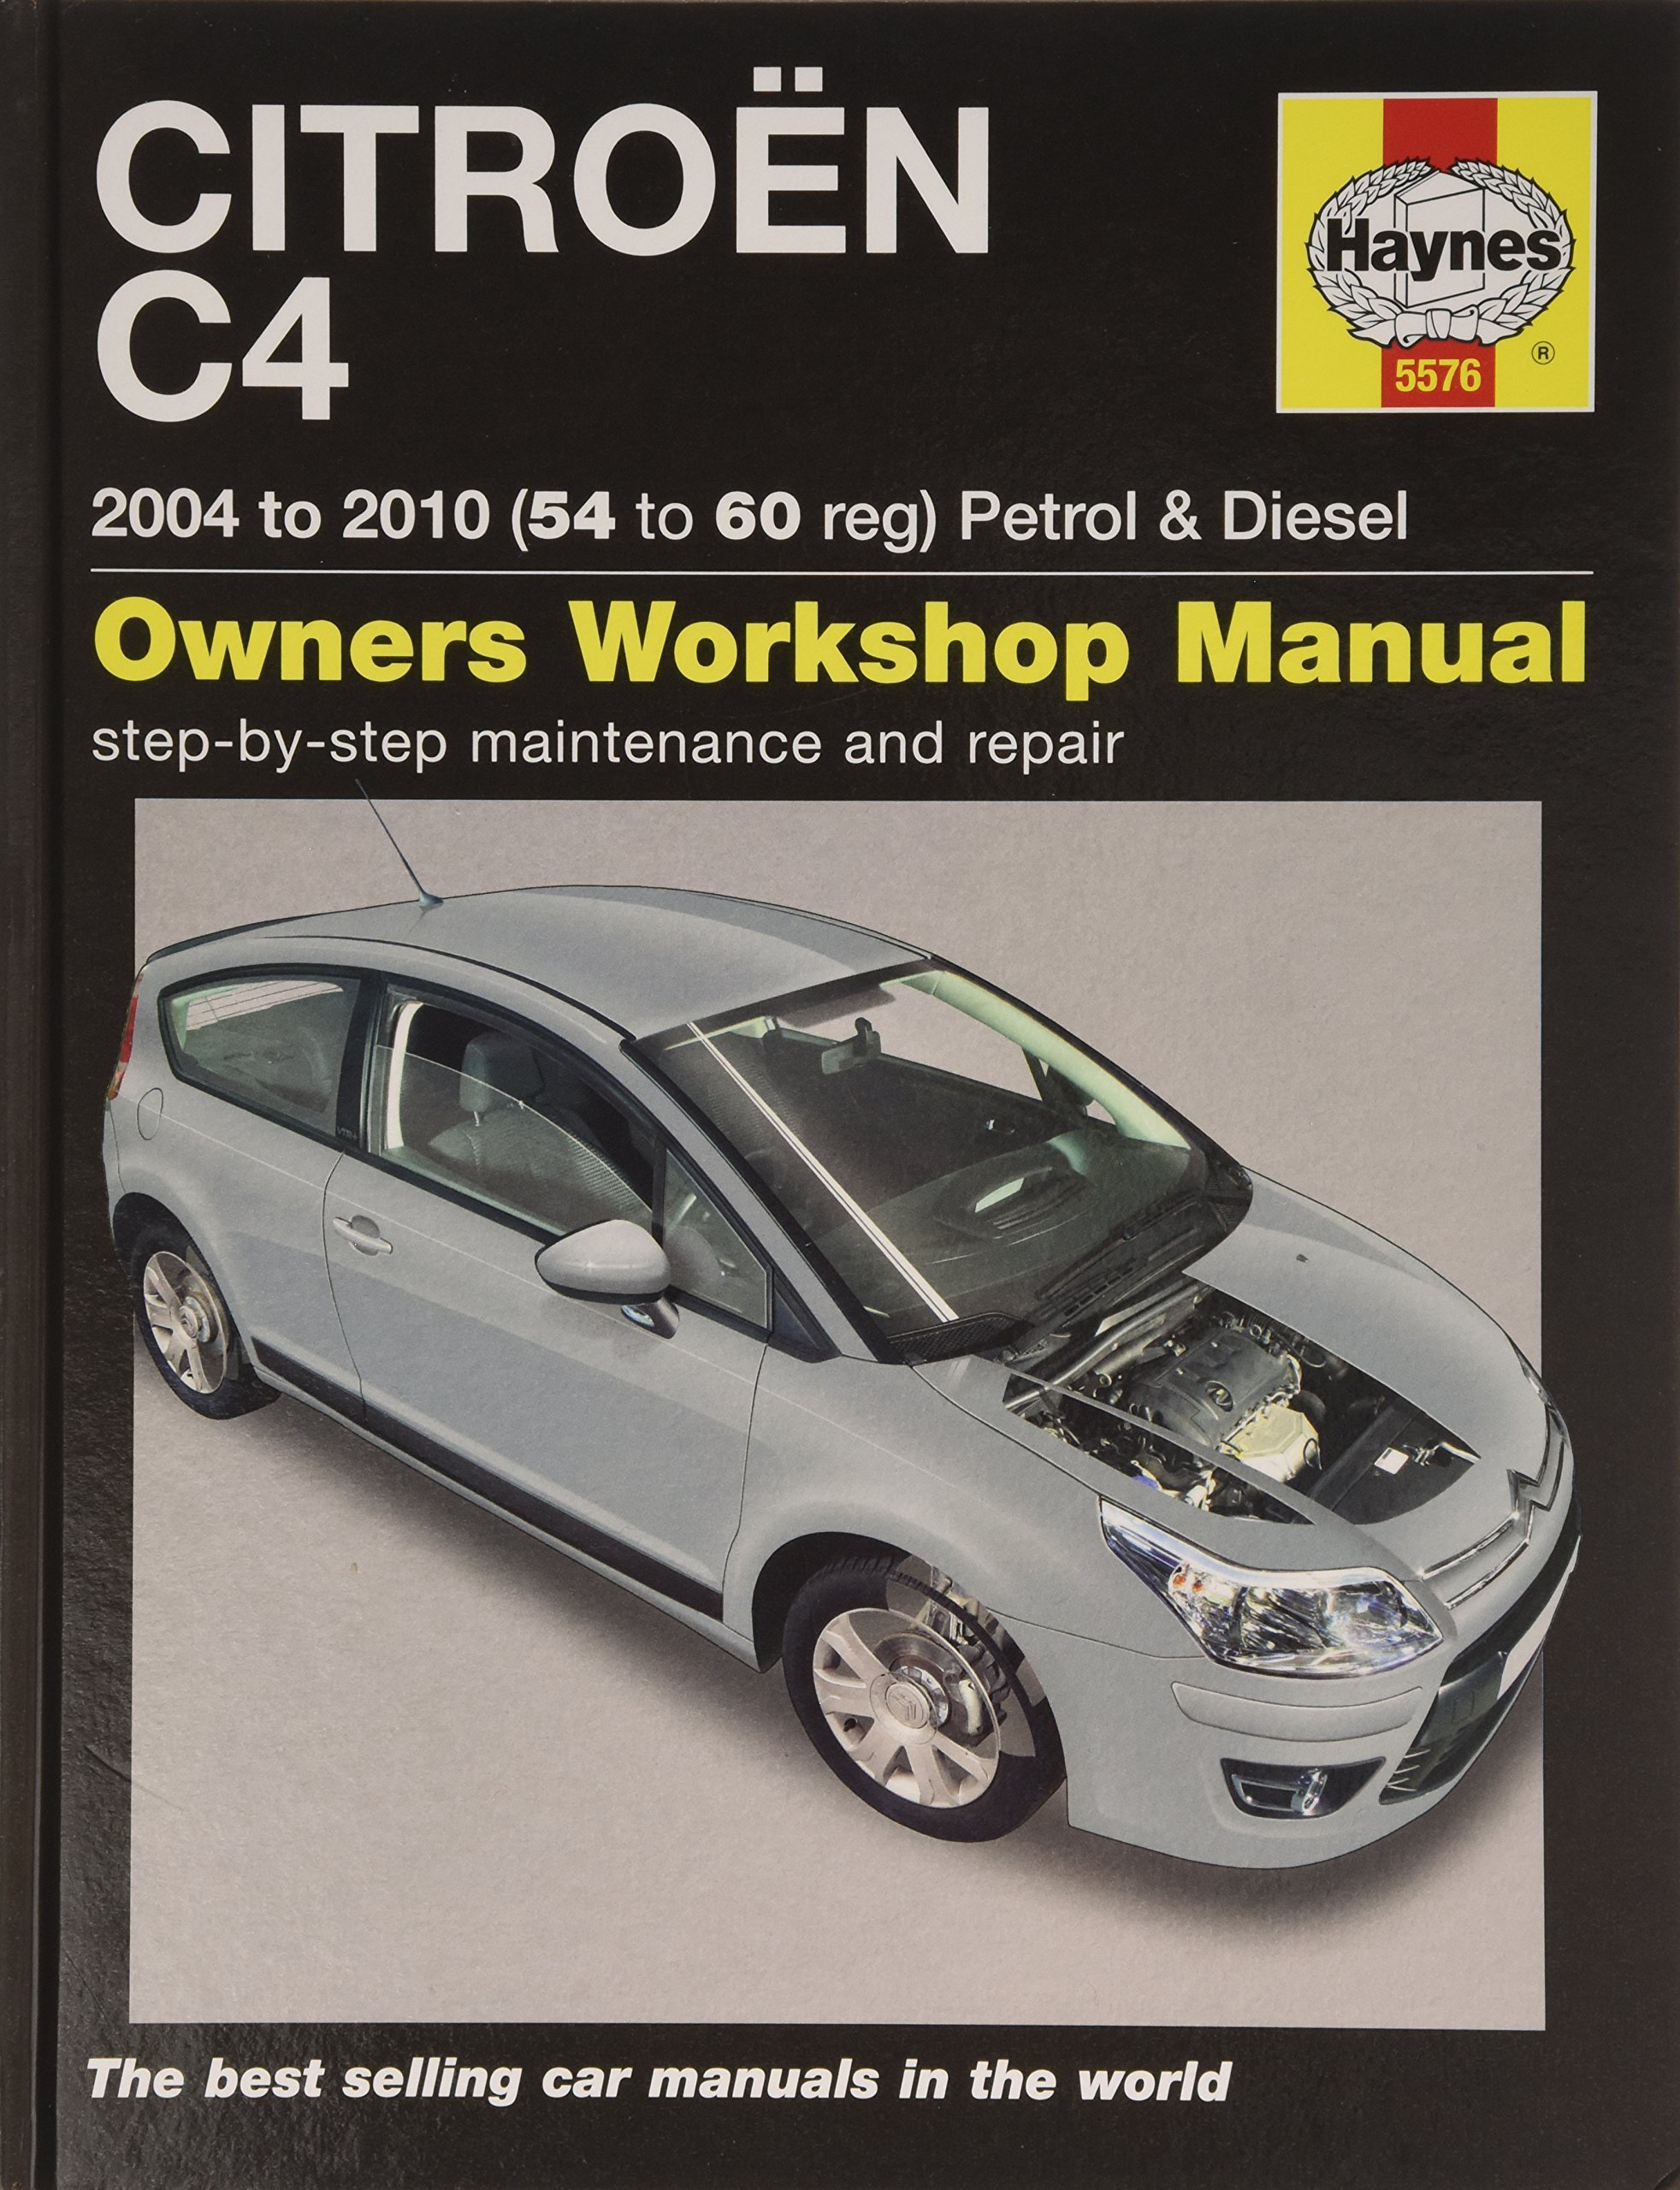 Haynes 5576 Repair and Service Workshop Manual: Amazon.co.uk:  0638876409254: Books